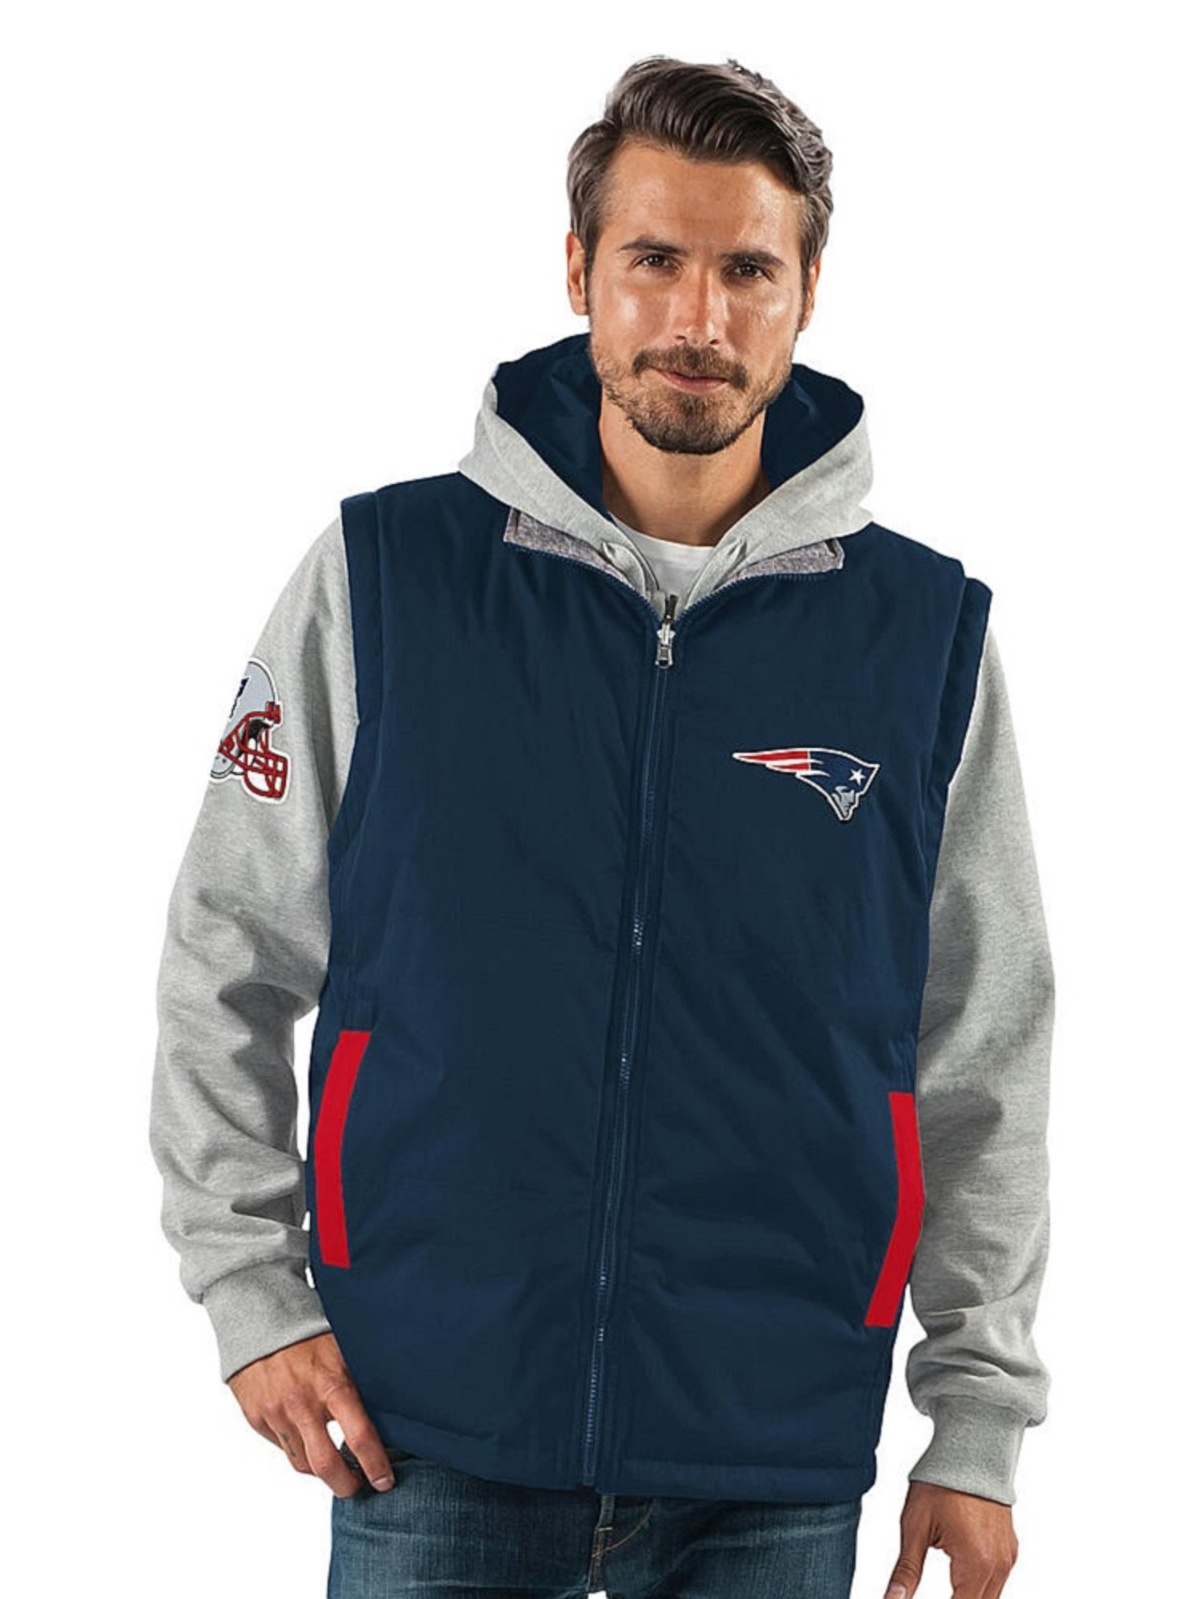 New England Patriots N-FL Mens 8-in1 Systems Jacket by